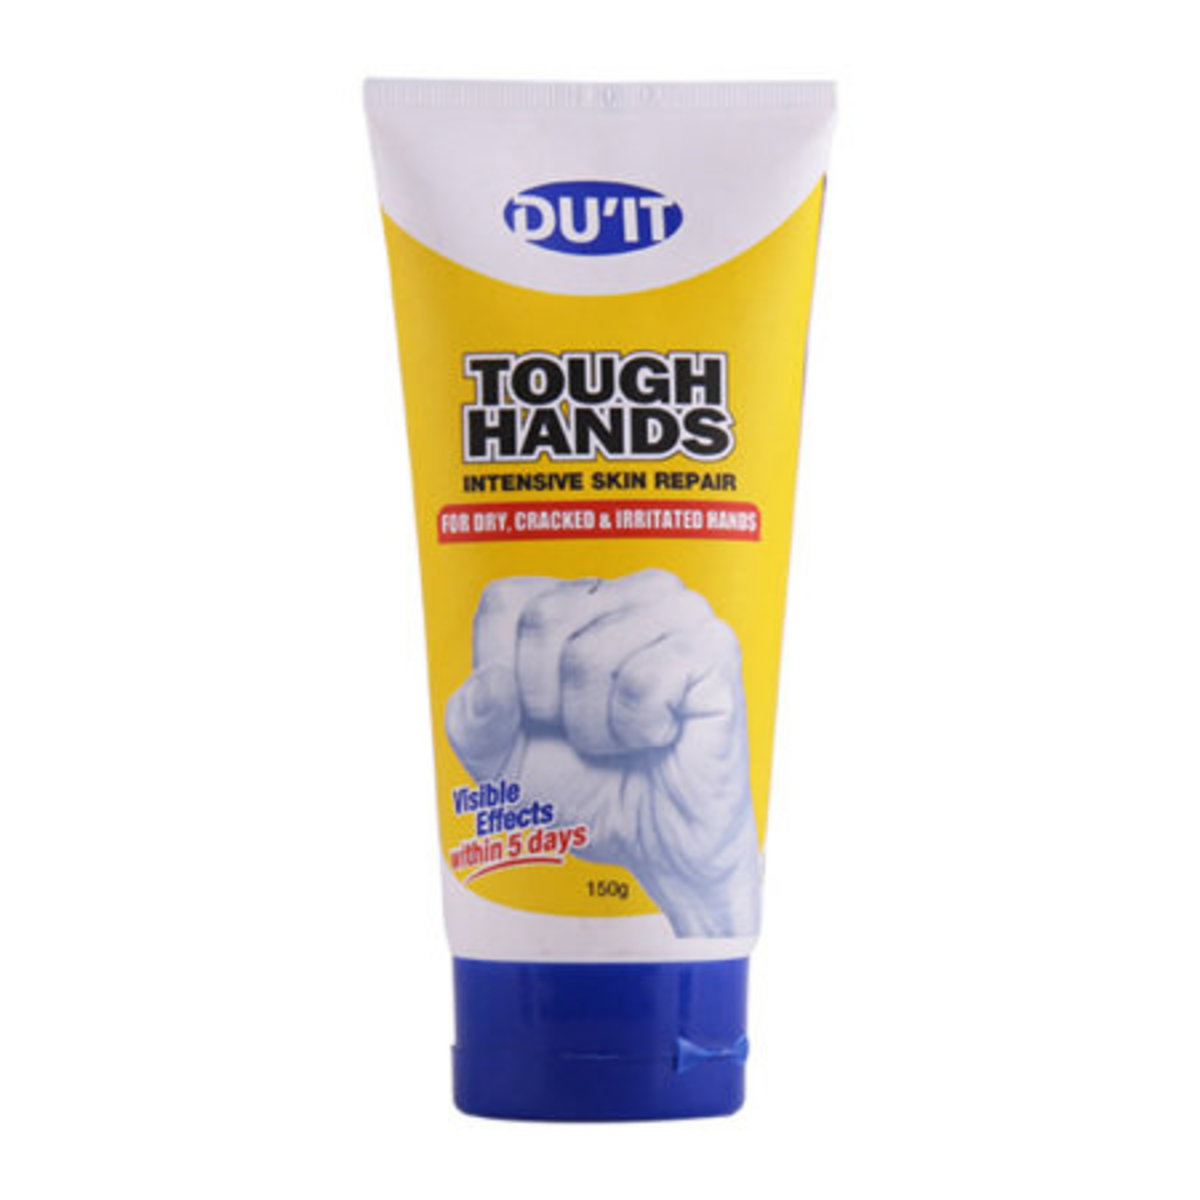 DU'IT Tough Hands Intensive Skin Repair, For Dry Cracked & Irritated Hands 150g (parallel imports)